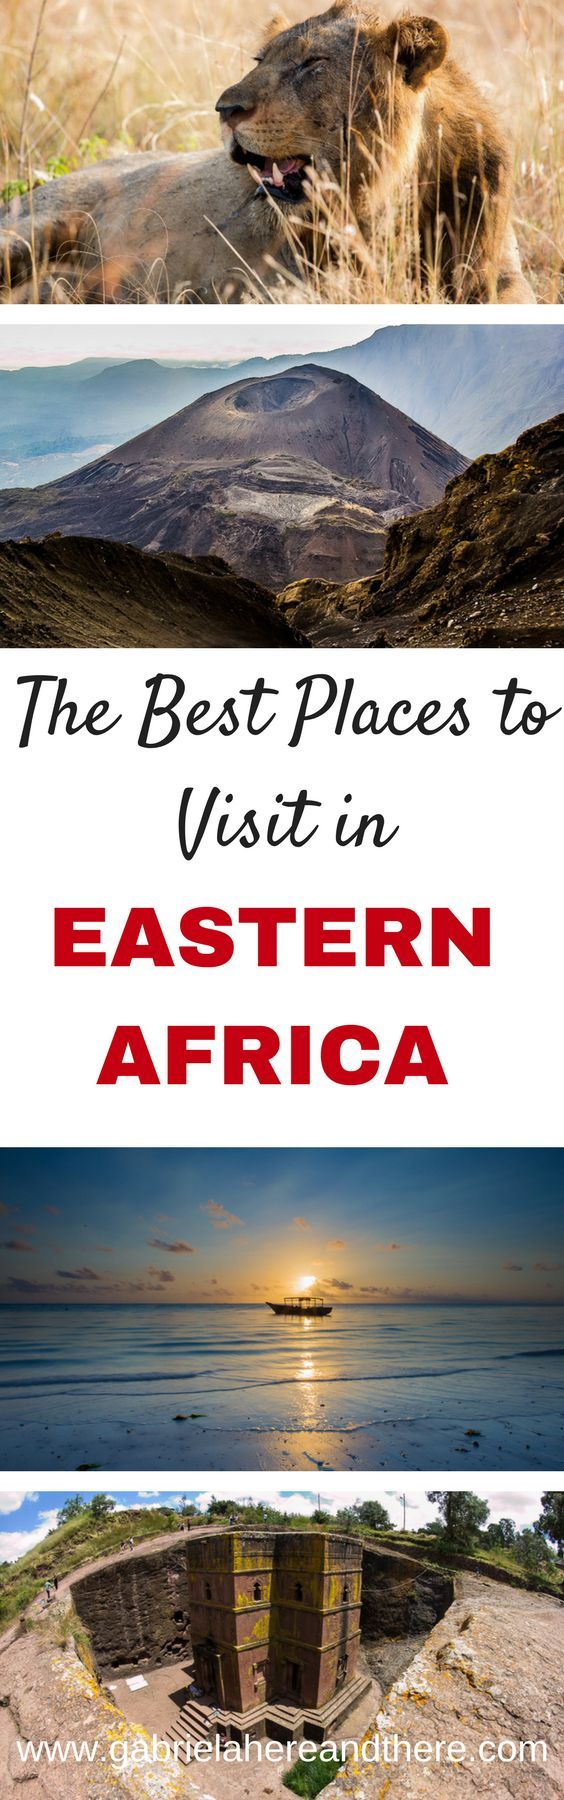 The Best Places to Visit in Eastern Africa. Including places in Malawi, Mozambique, Kenya, Tanzania, Rwanda, Uganda, Ethiopia, Comoros, and Djibouti.